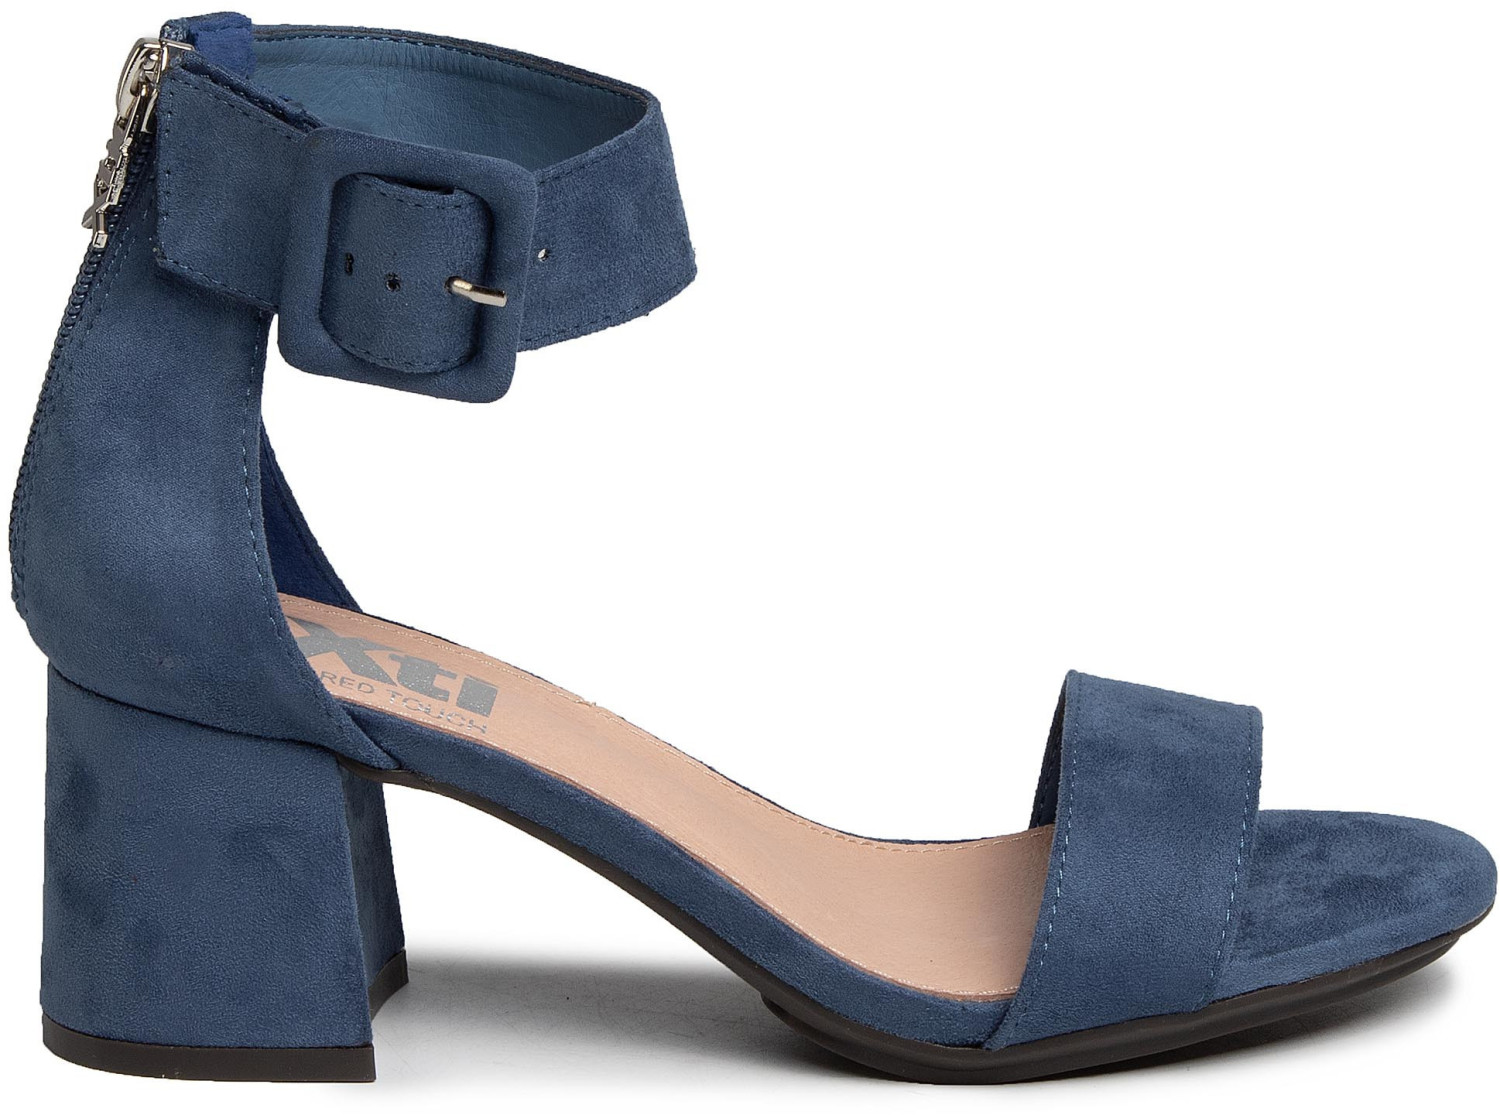 XTI Slingback Pumps (35196) blue jeans